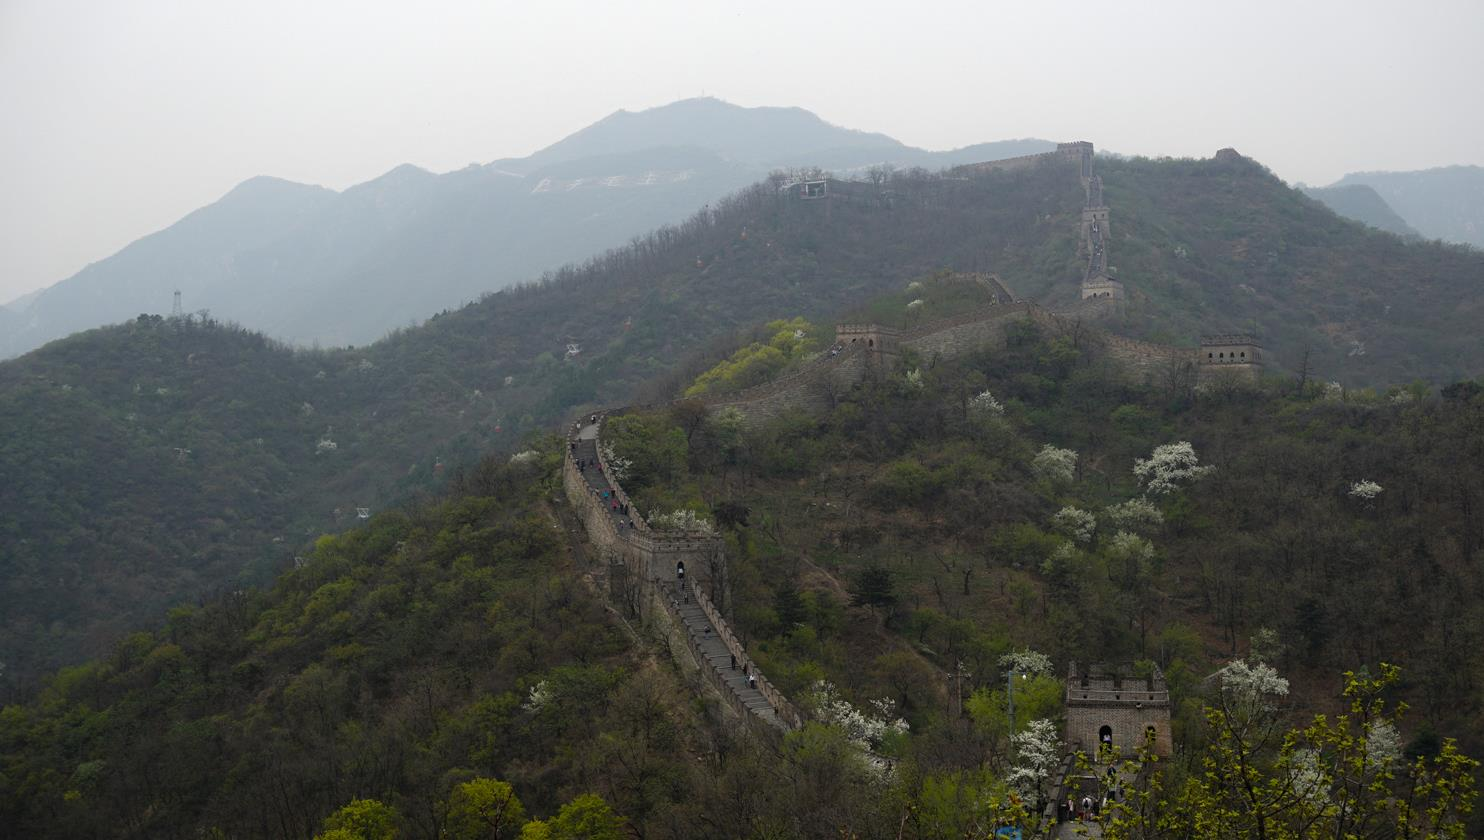 Great wall of China Mutianyu part